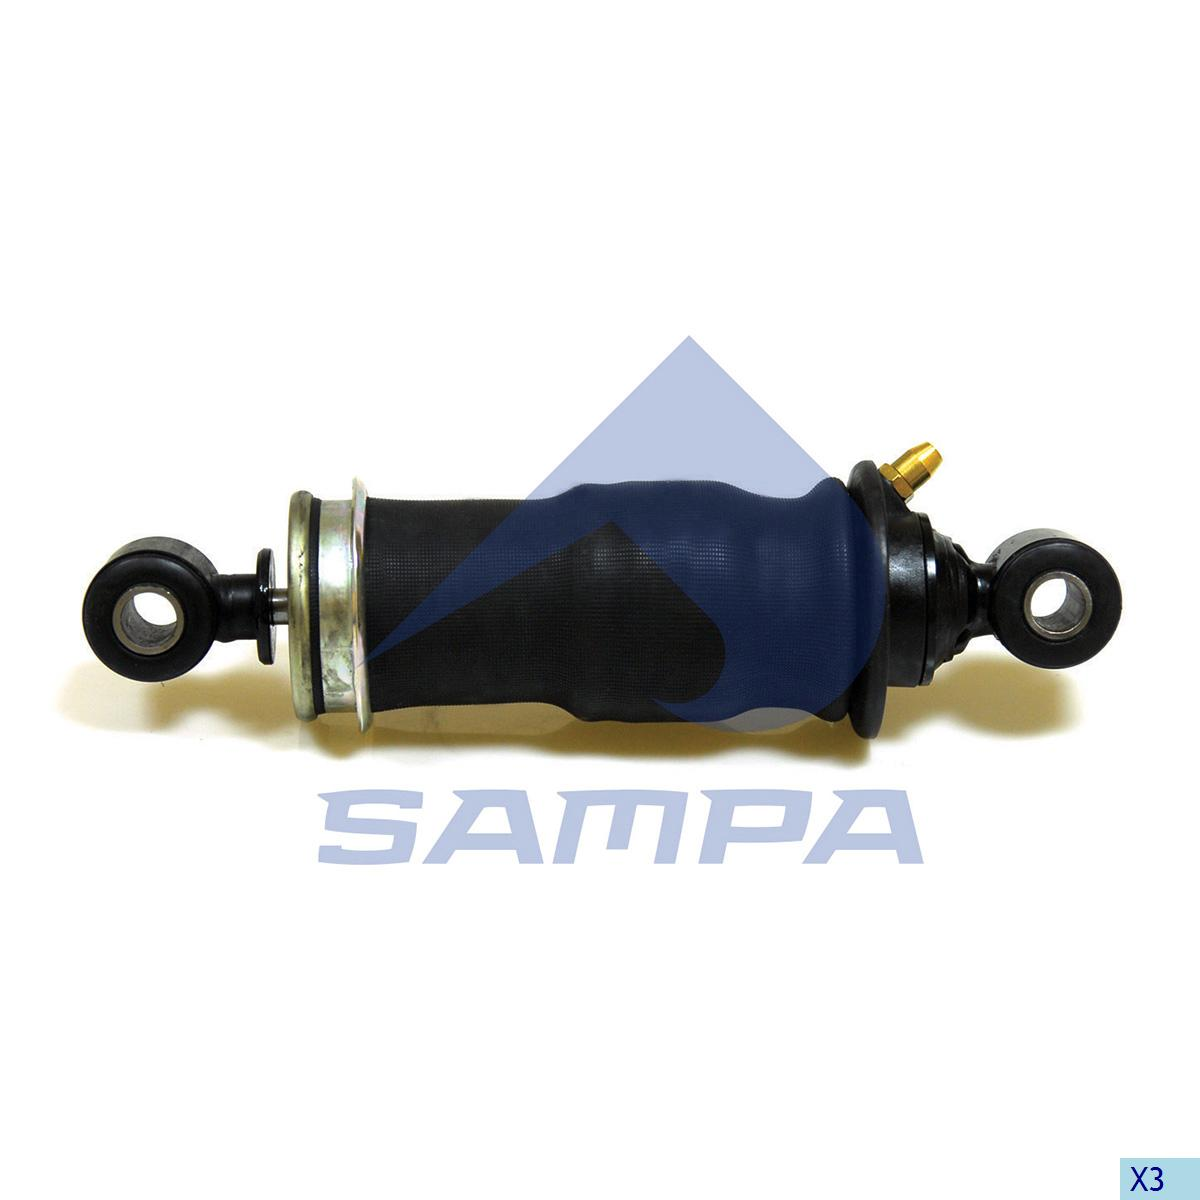 Shock Absorber, with Air Bellow, Cab, Iveco, Cab